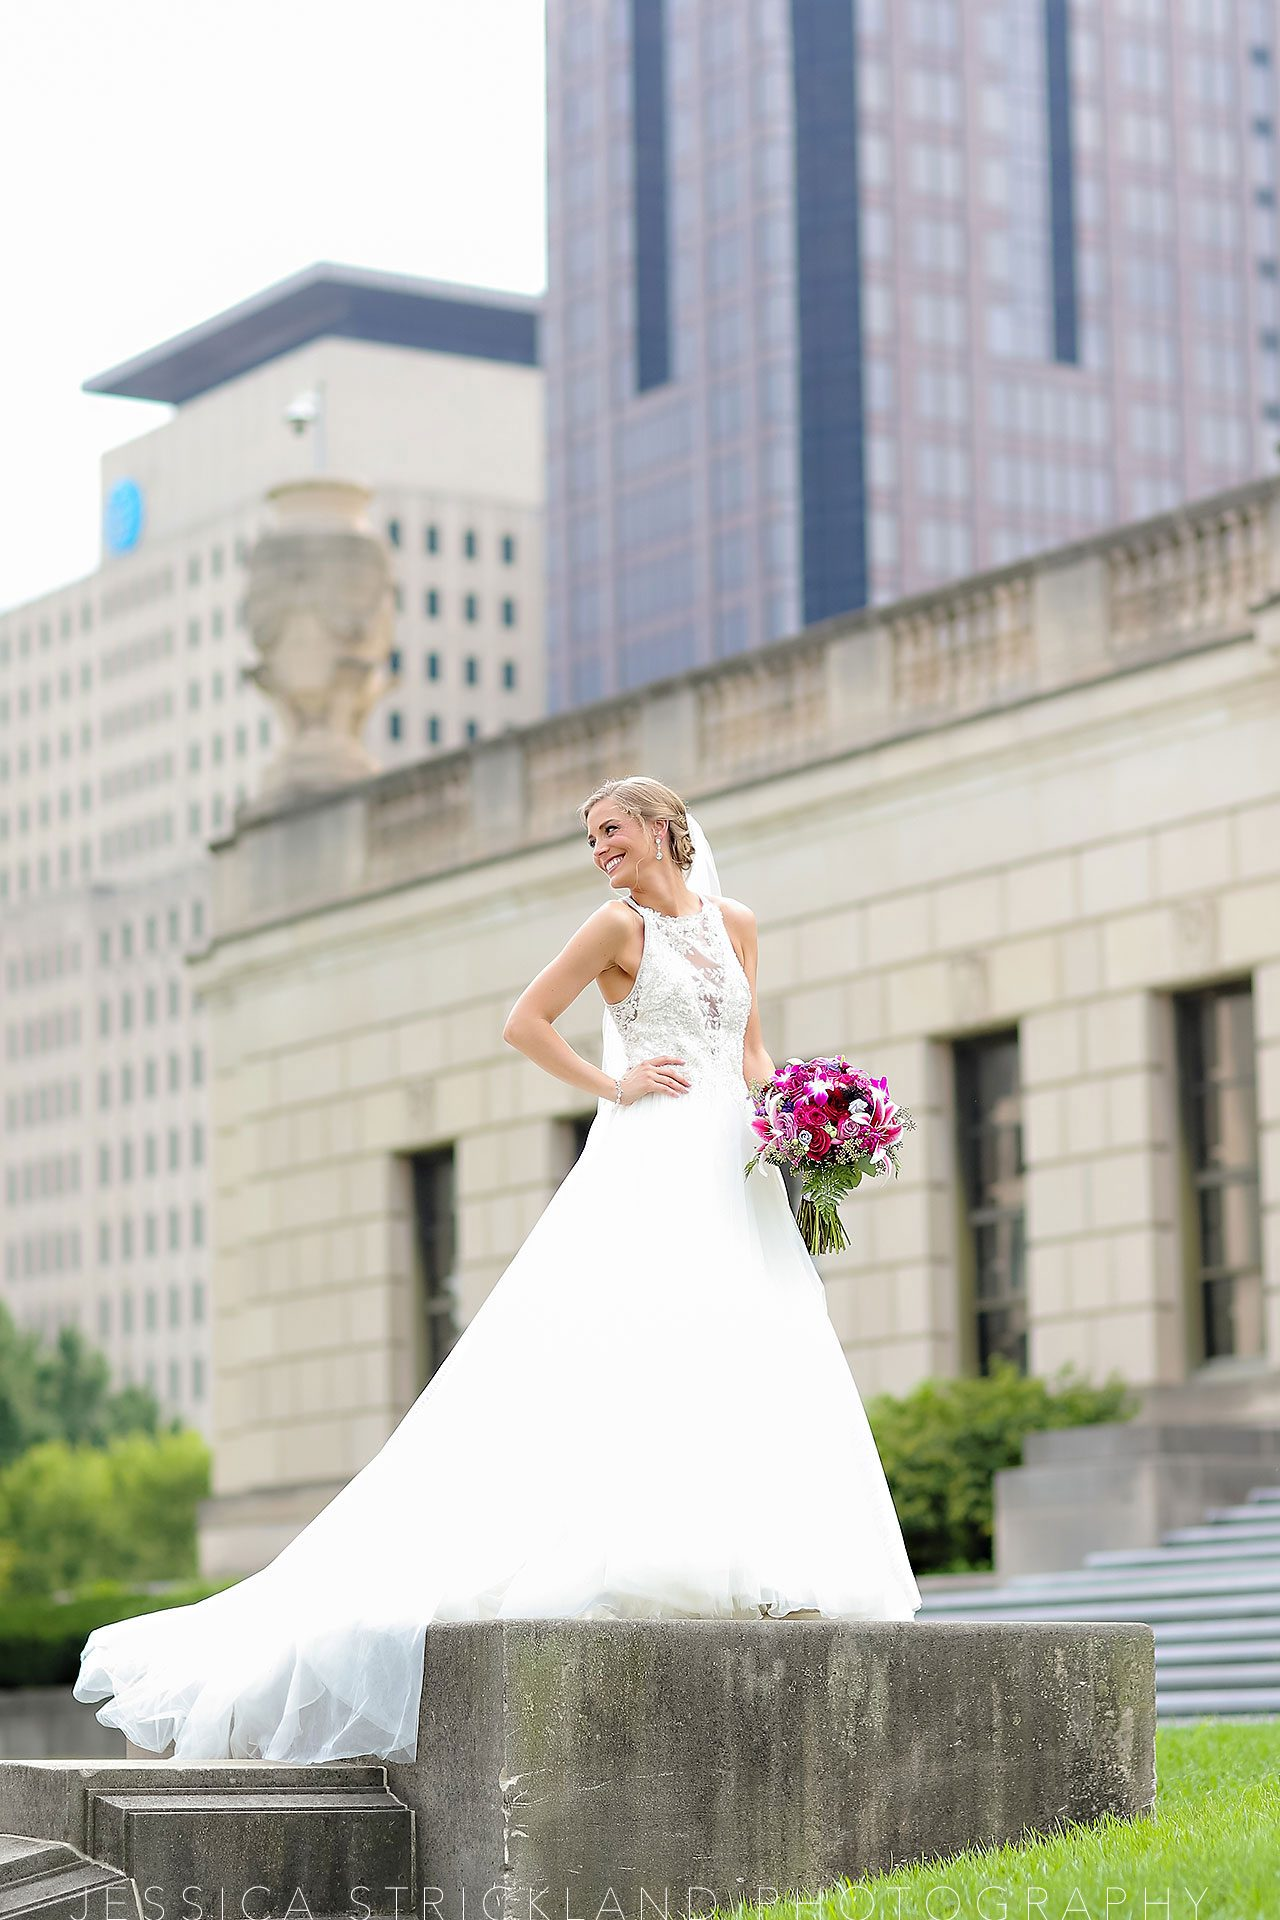 Serra Alex Regions Tower Indianapolis Wedding 083 watermarked